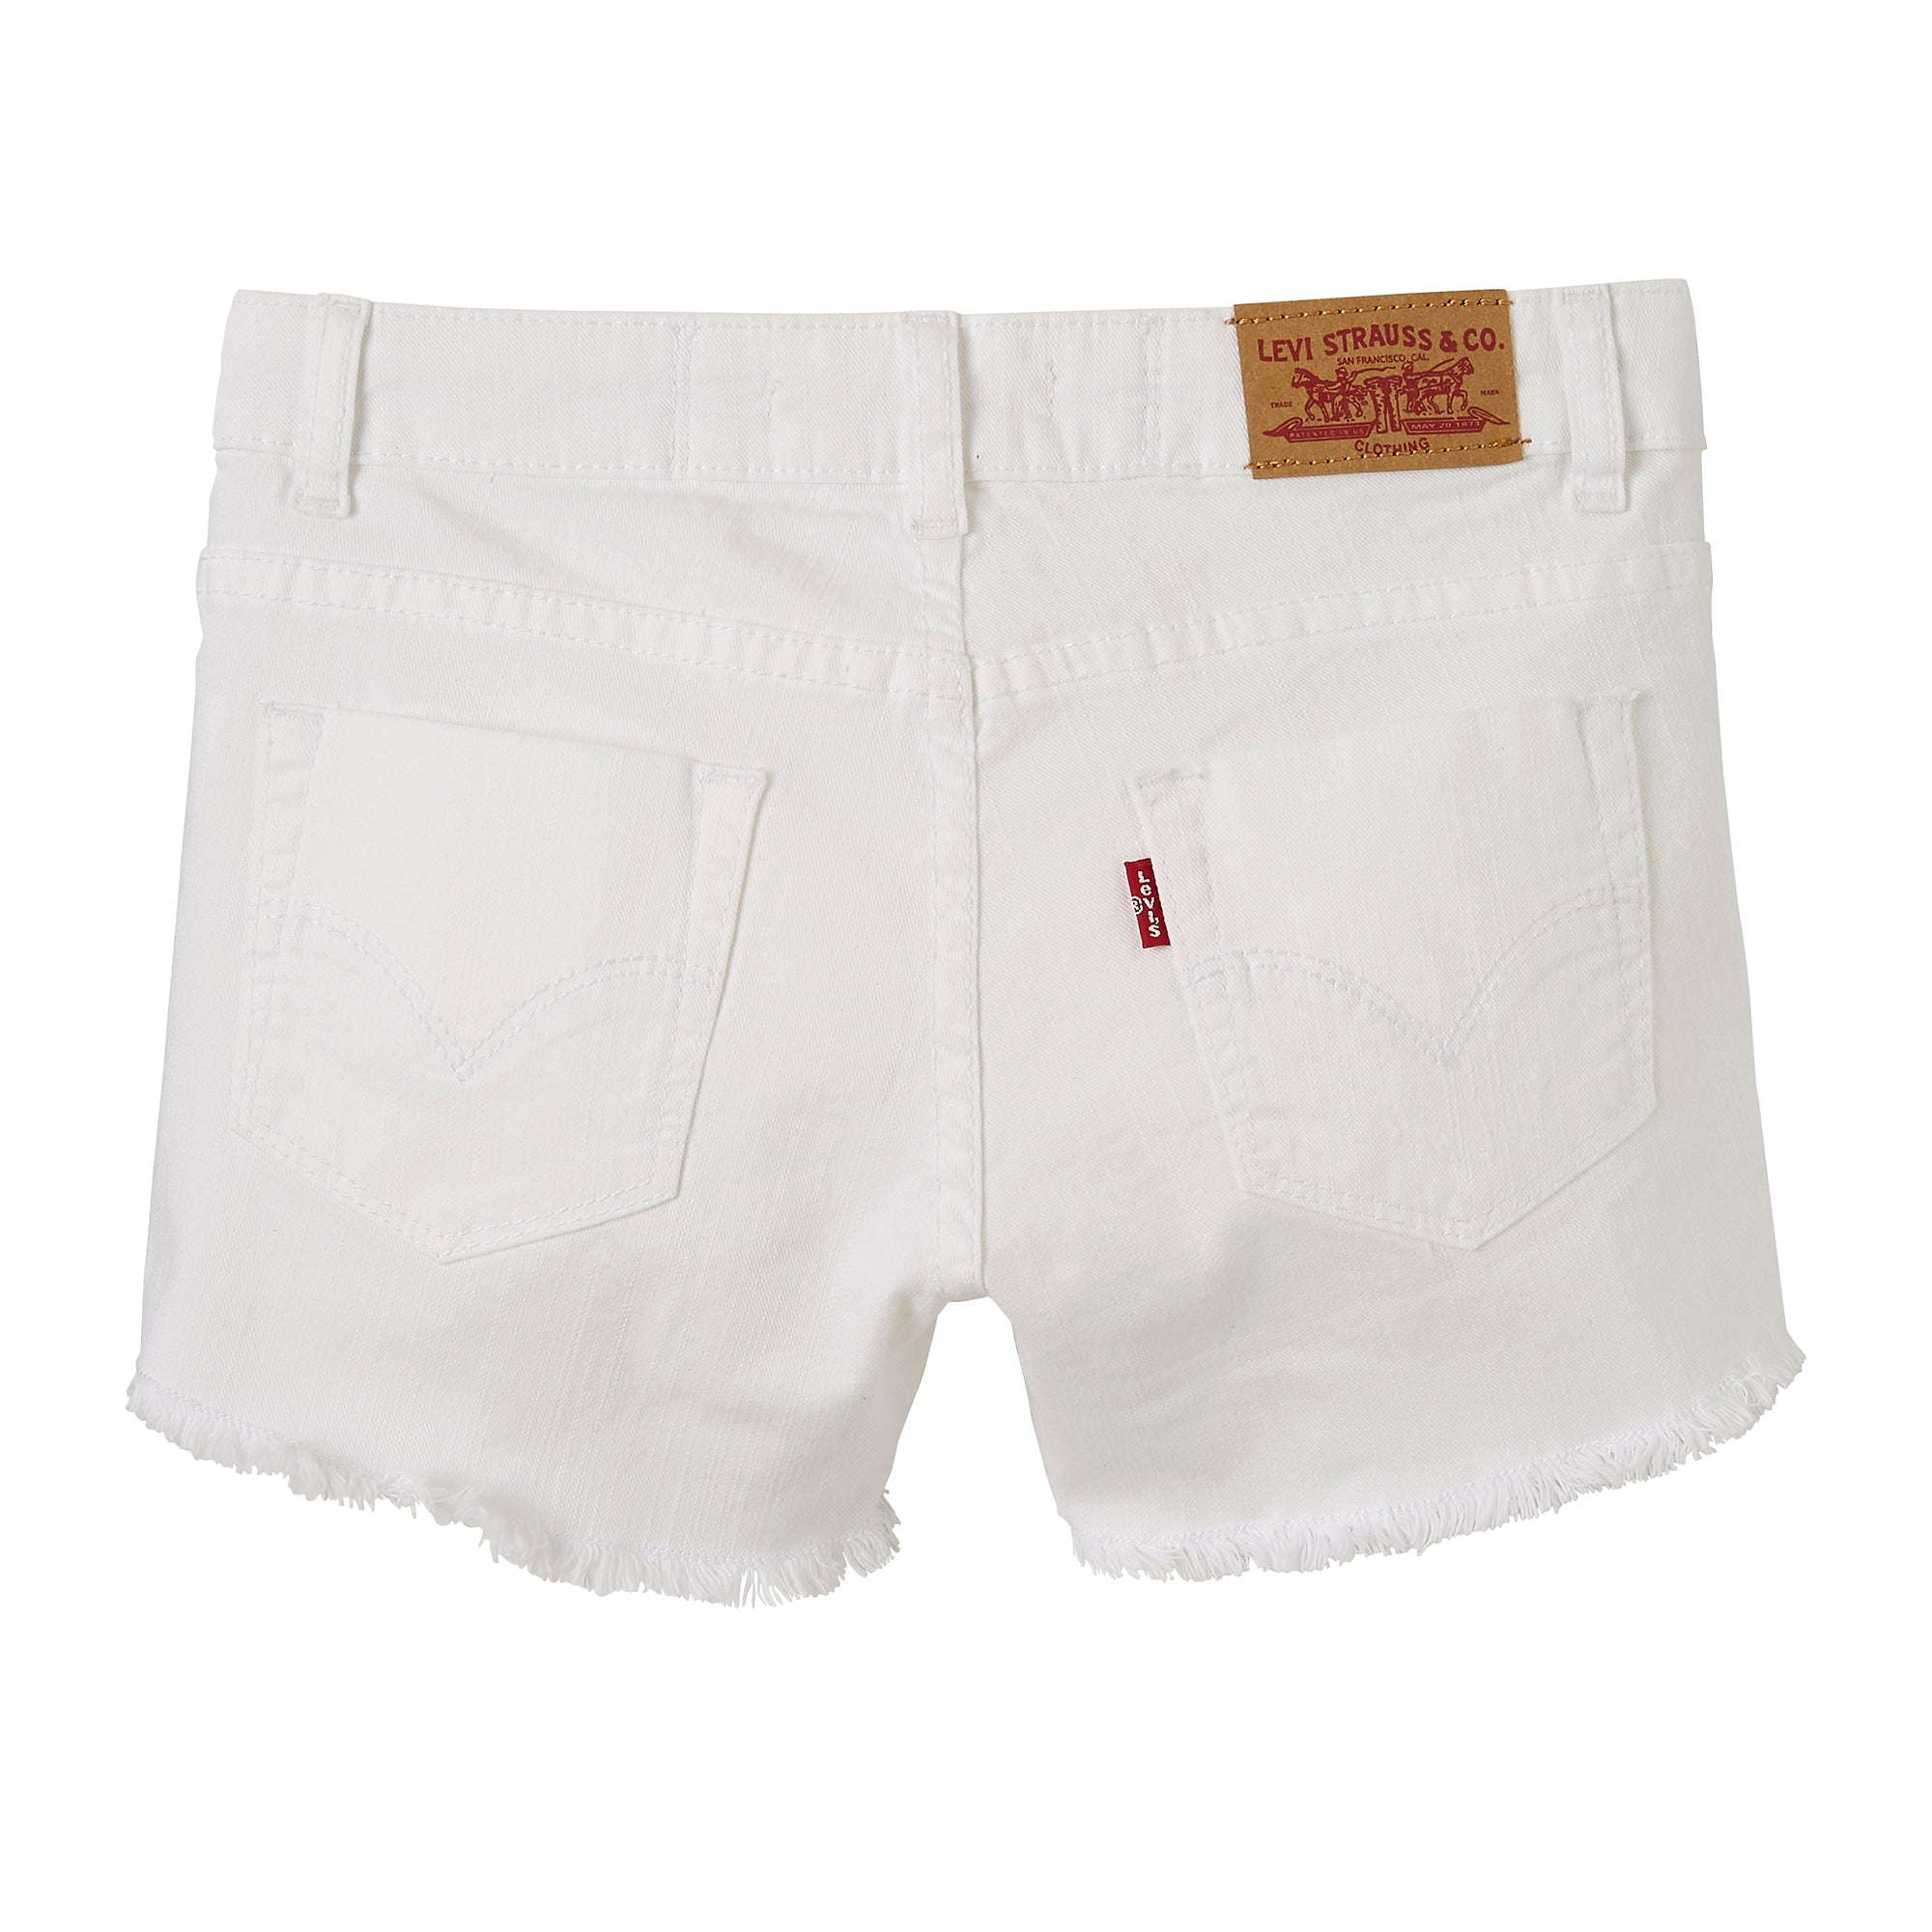 Levi's Girls White Distressed Shorts